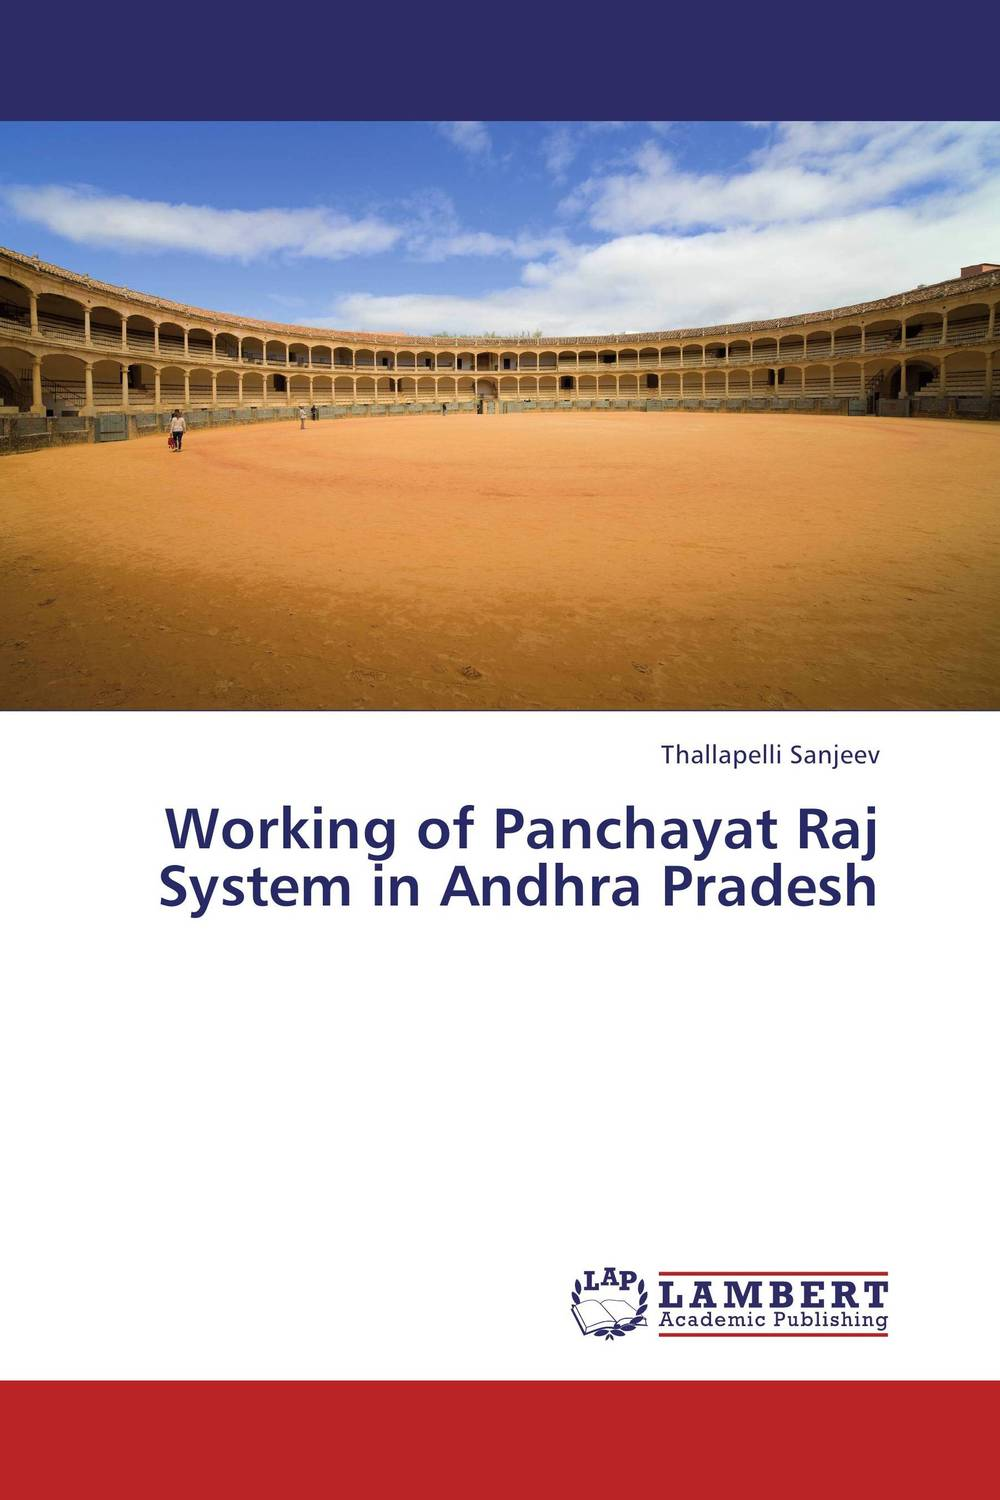 Working of Panchayat Raj System in Andhra Pradesh not working